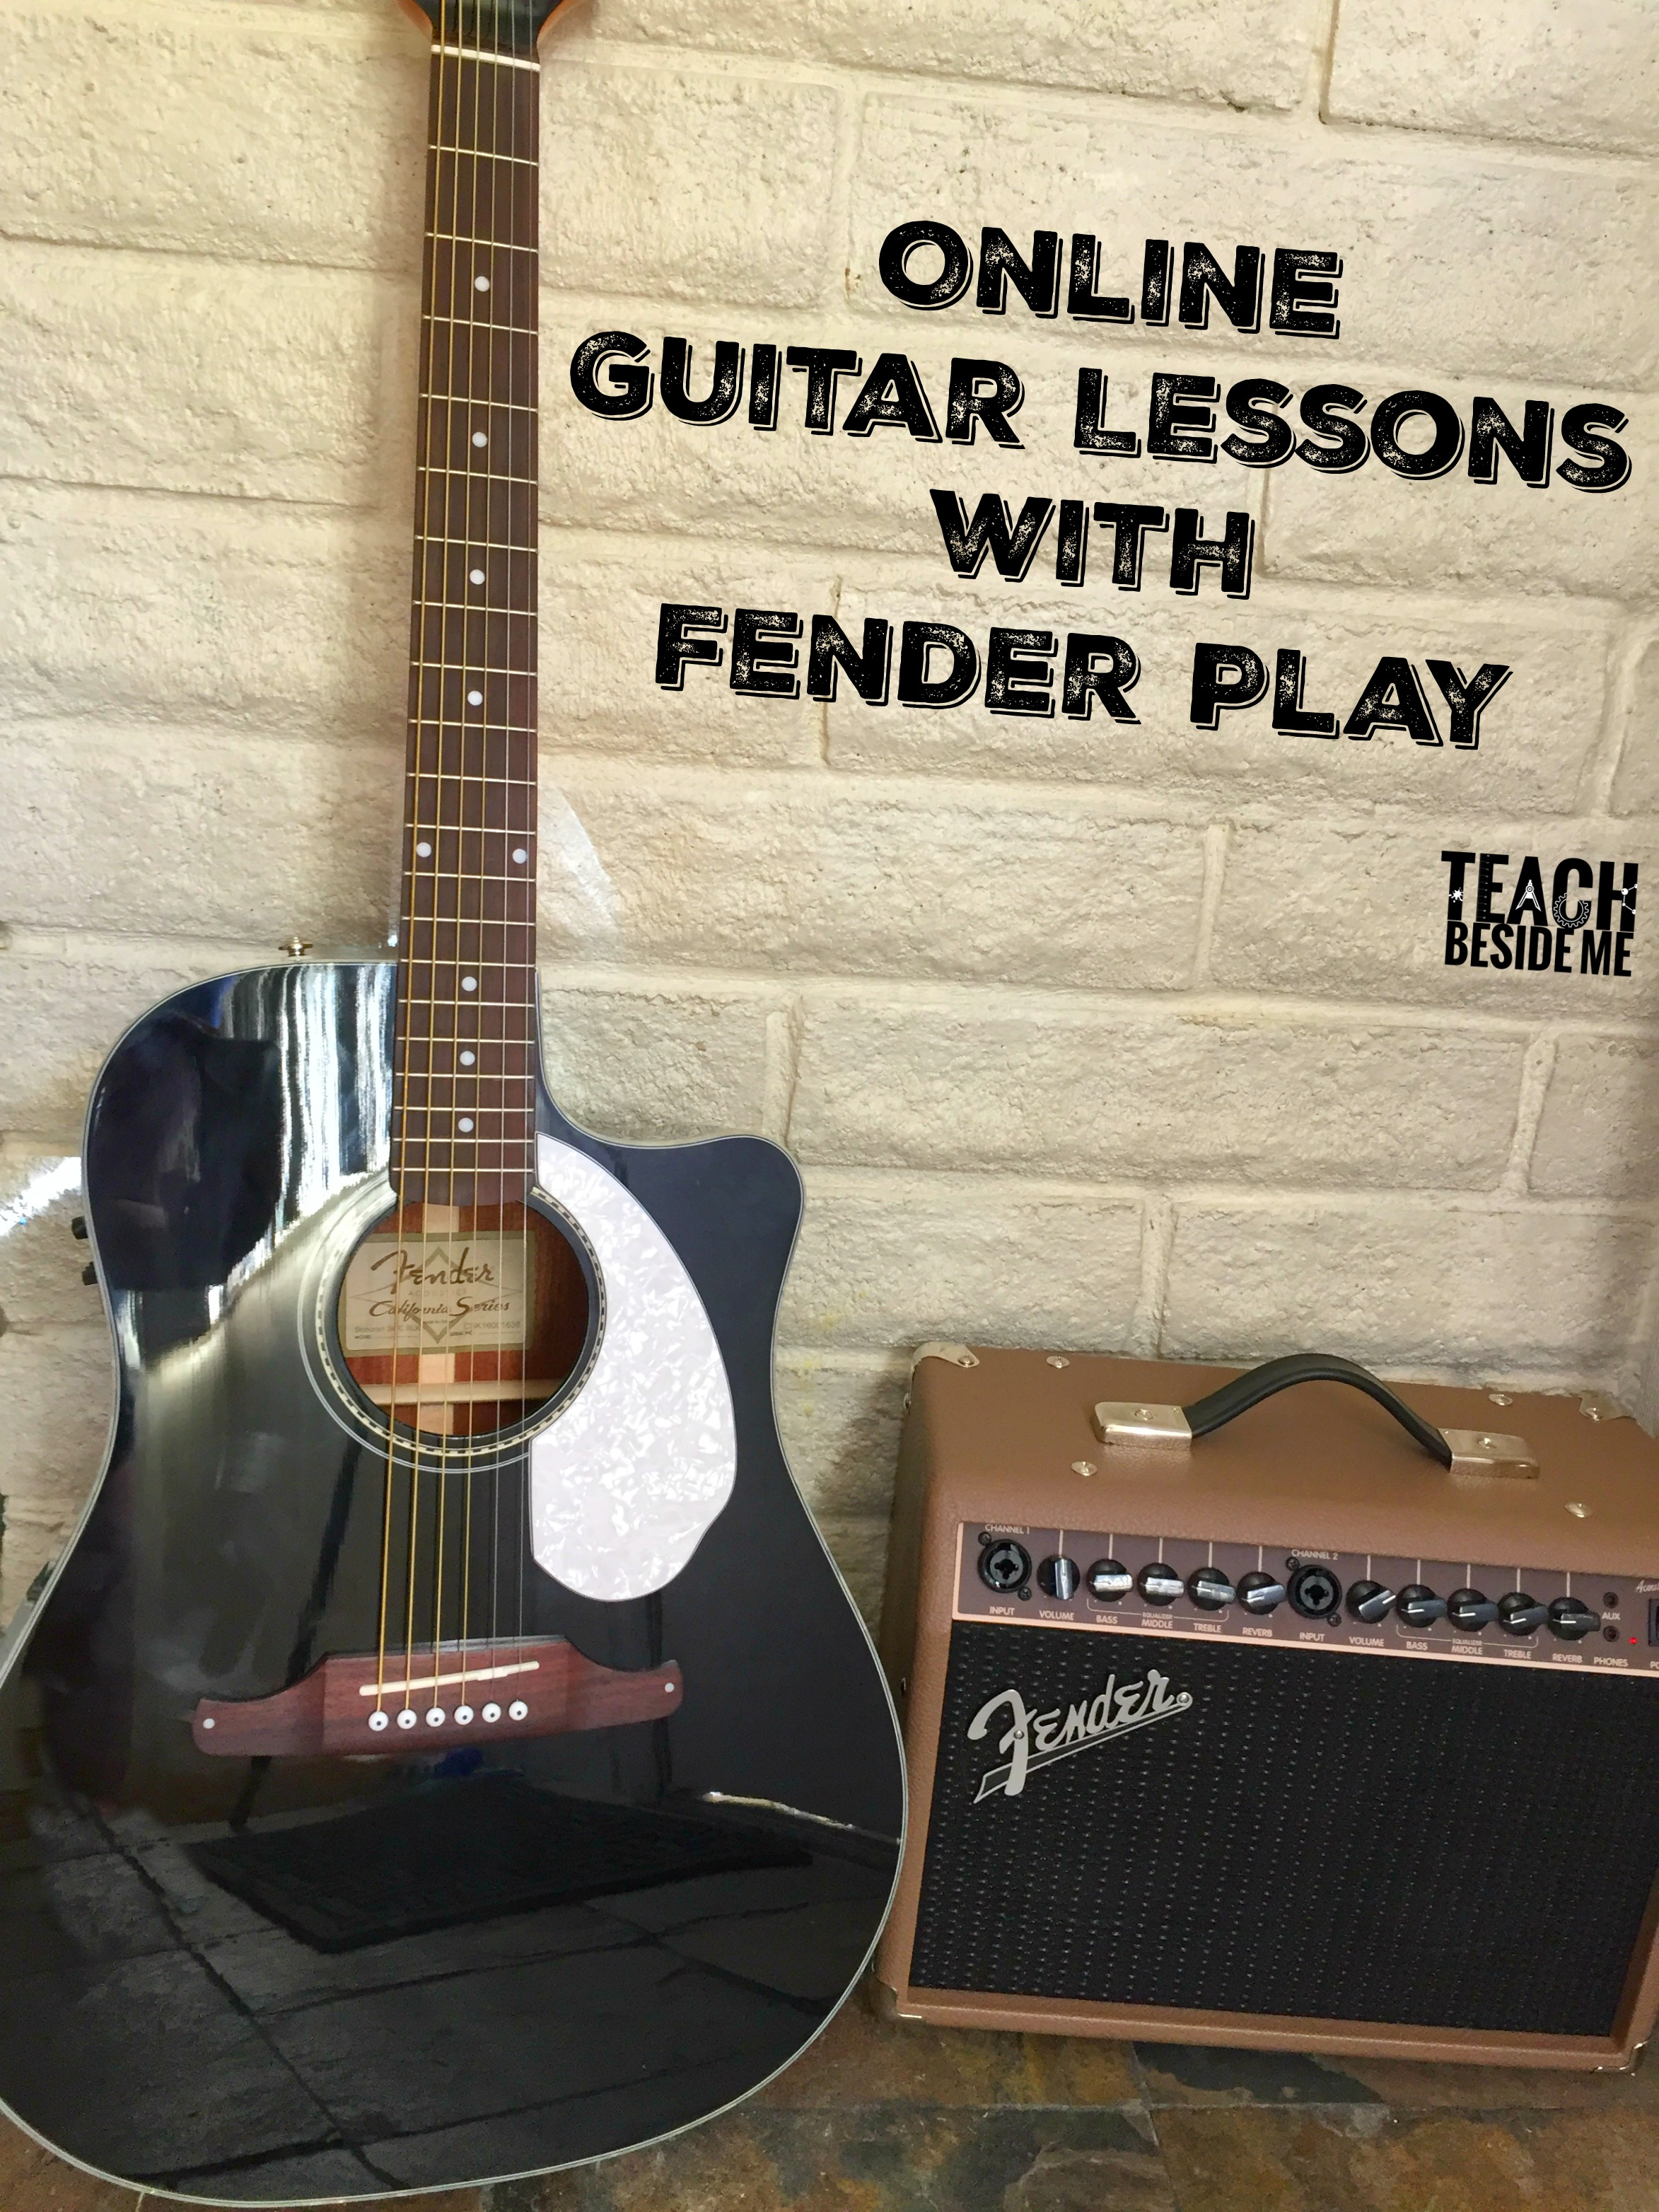 ... Online Guitar Lessons for Teens